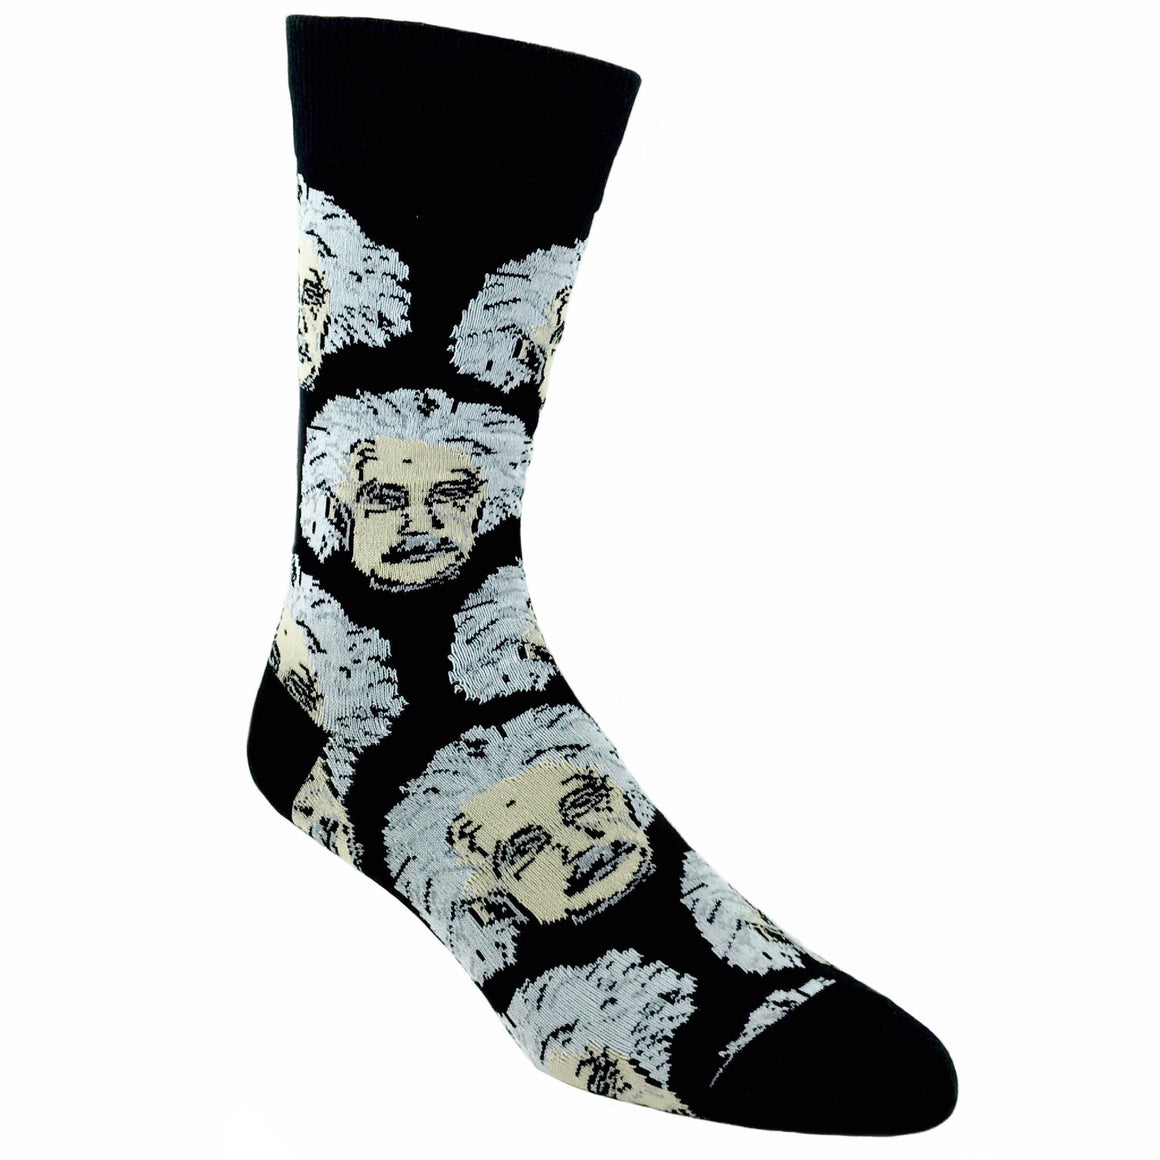 Einstein Genius Socks in Black by SockSmith - The Sock Spot